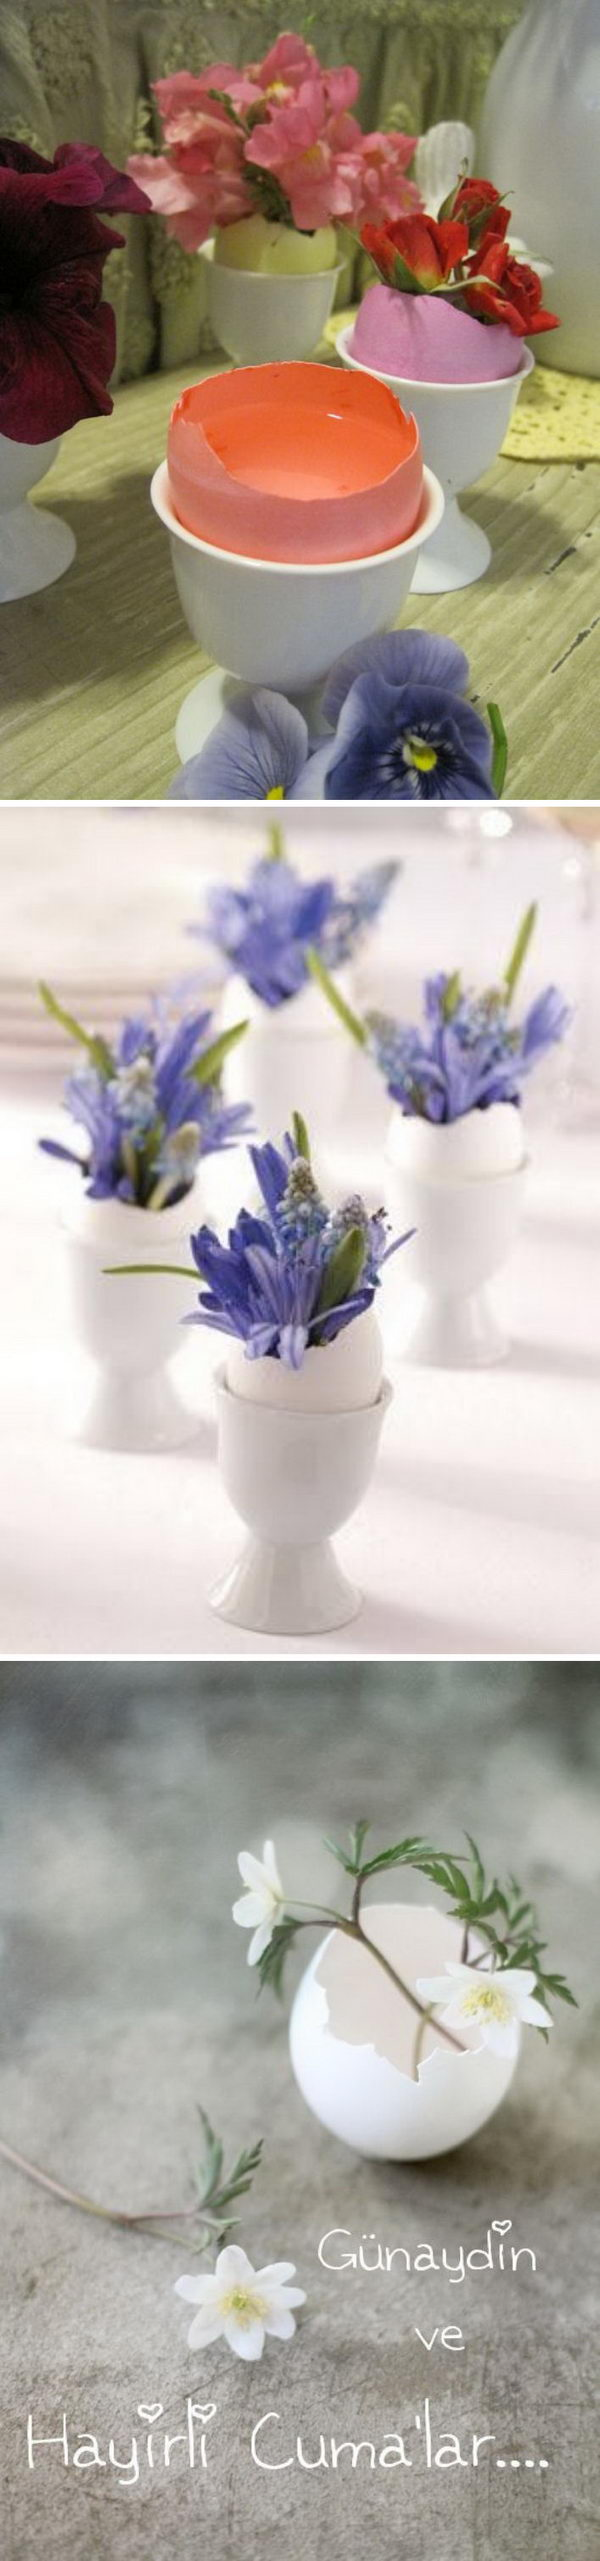 Use the eggshells as flower vases.